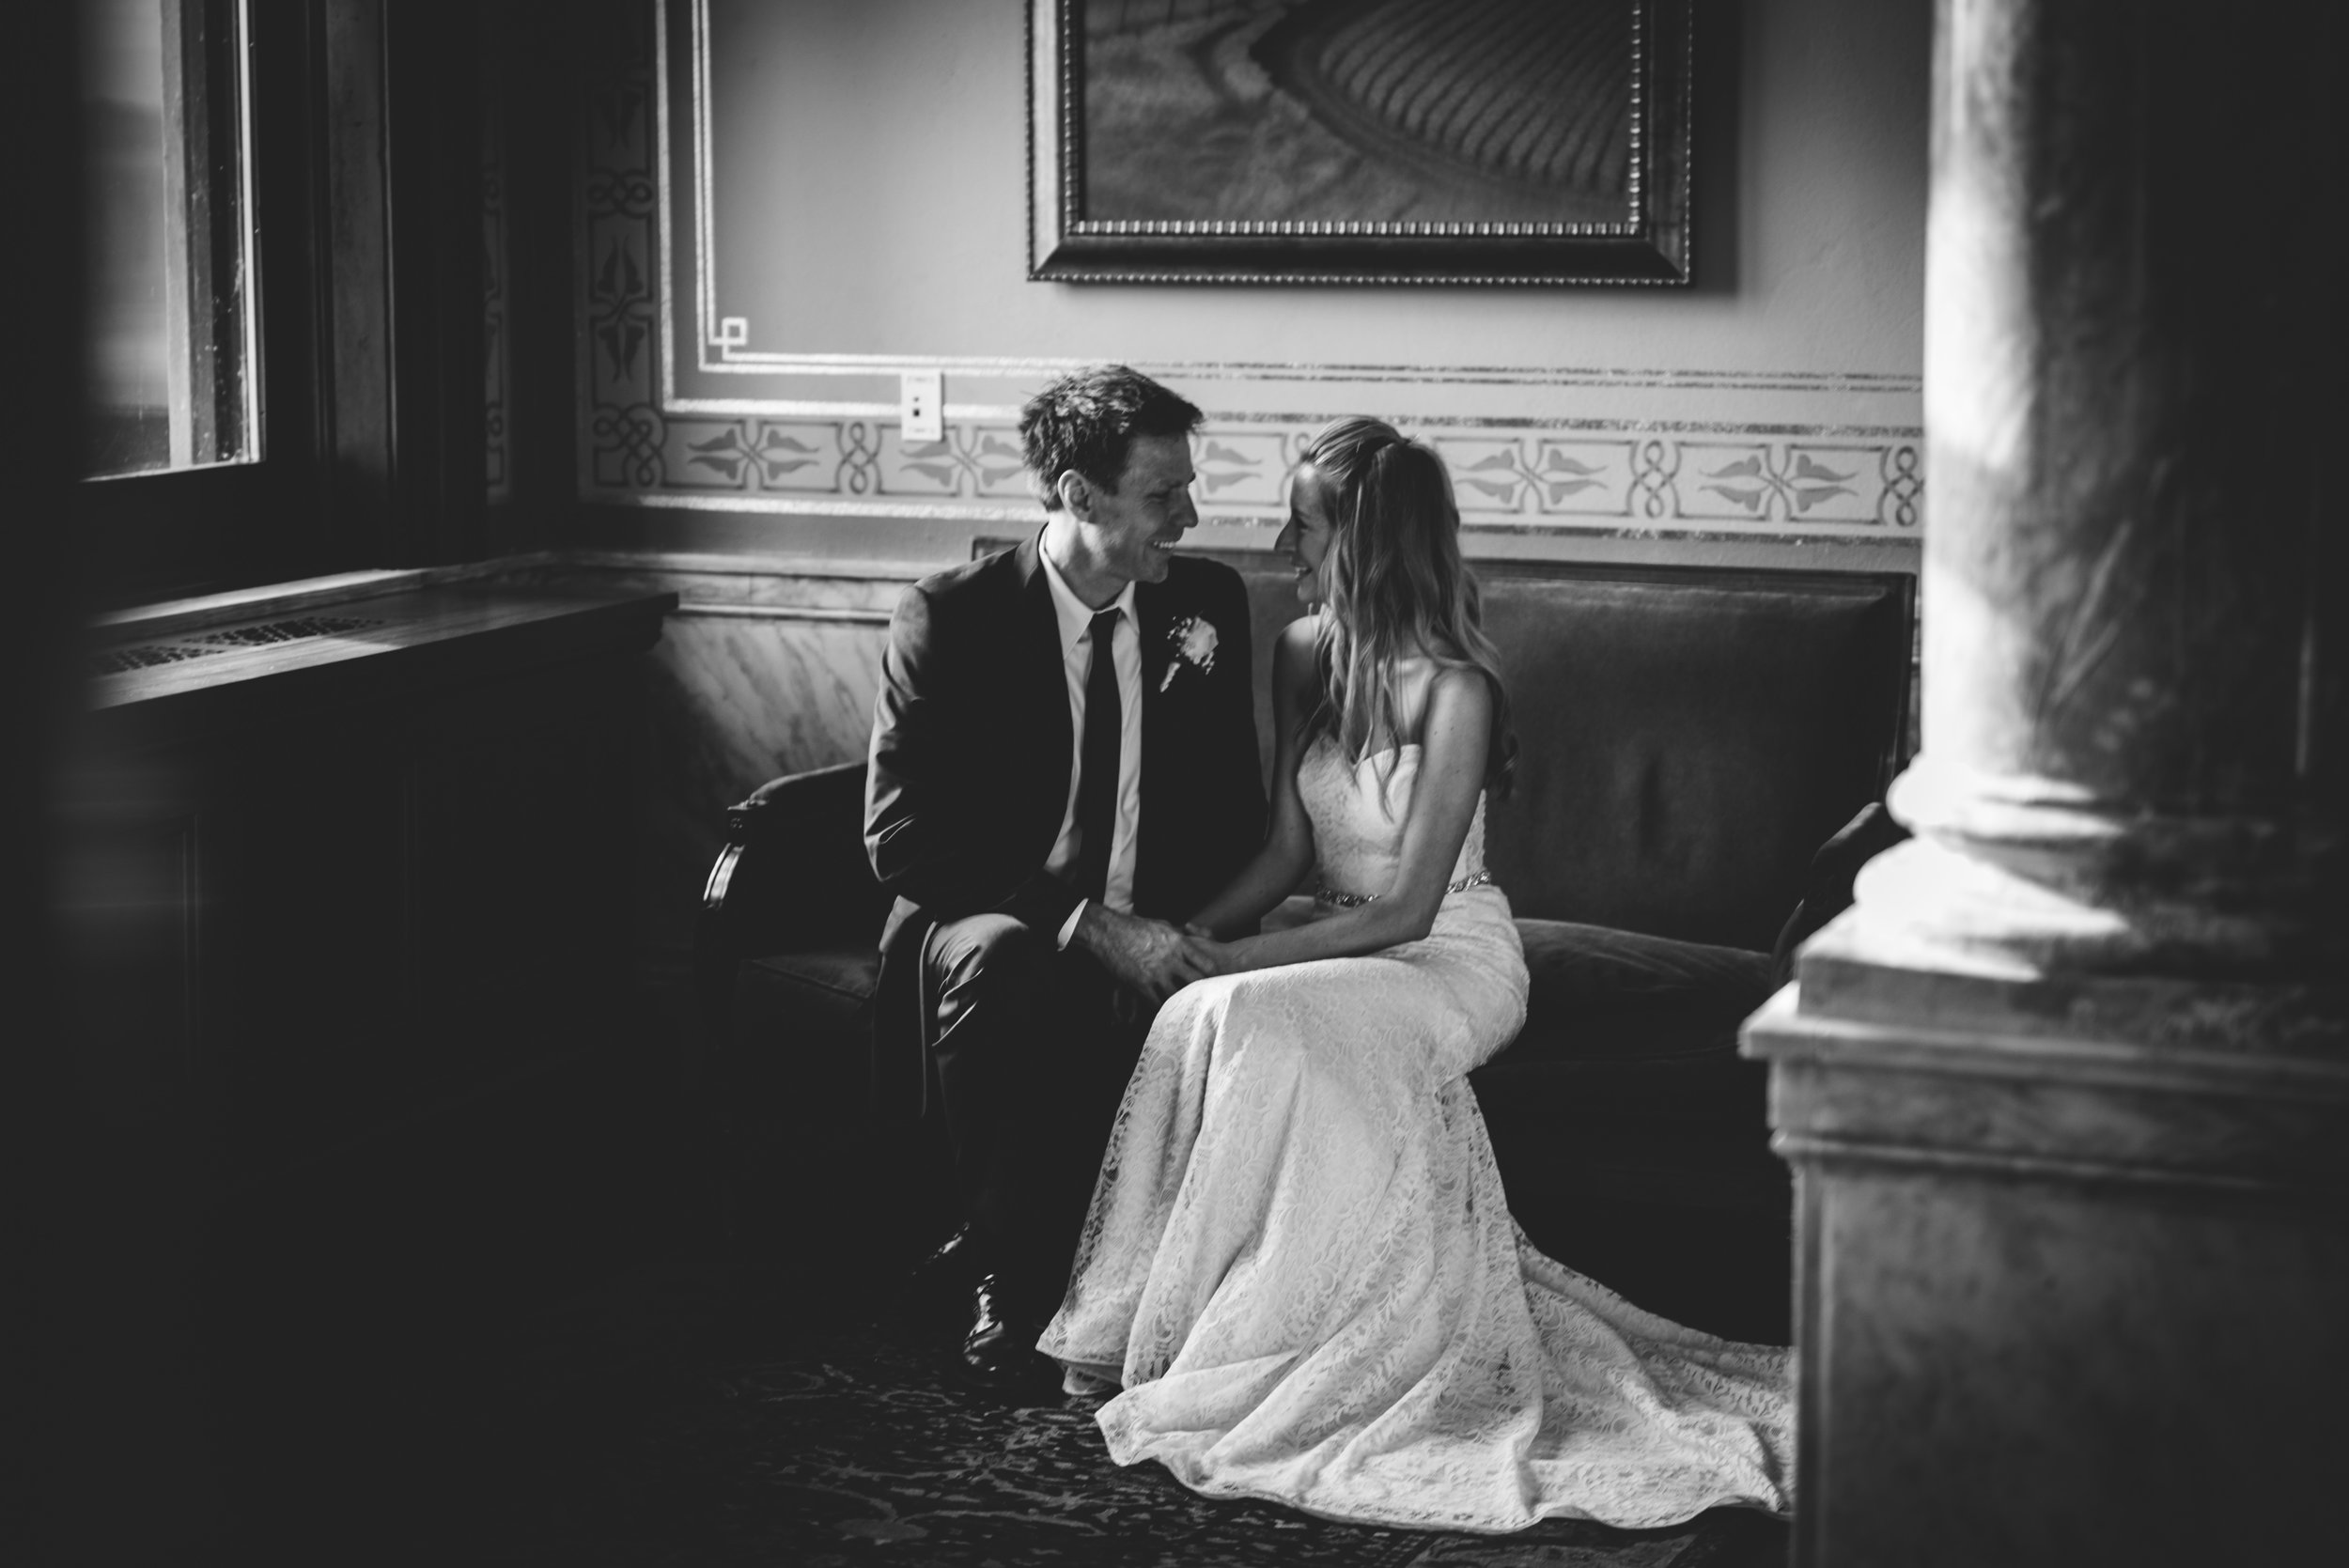 Des-Moines-Wedding-Blog-Kayla-Jeff-30.jpg